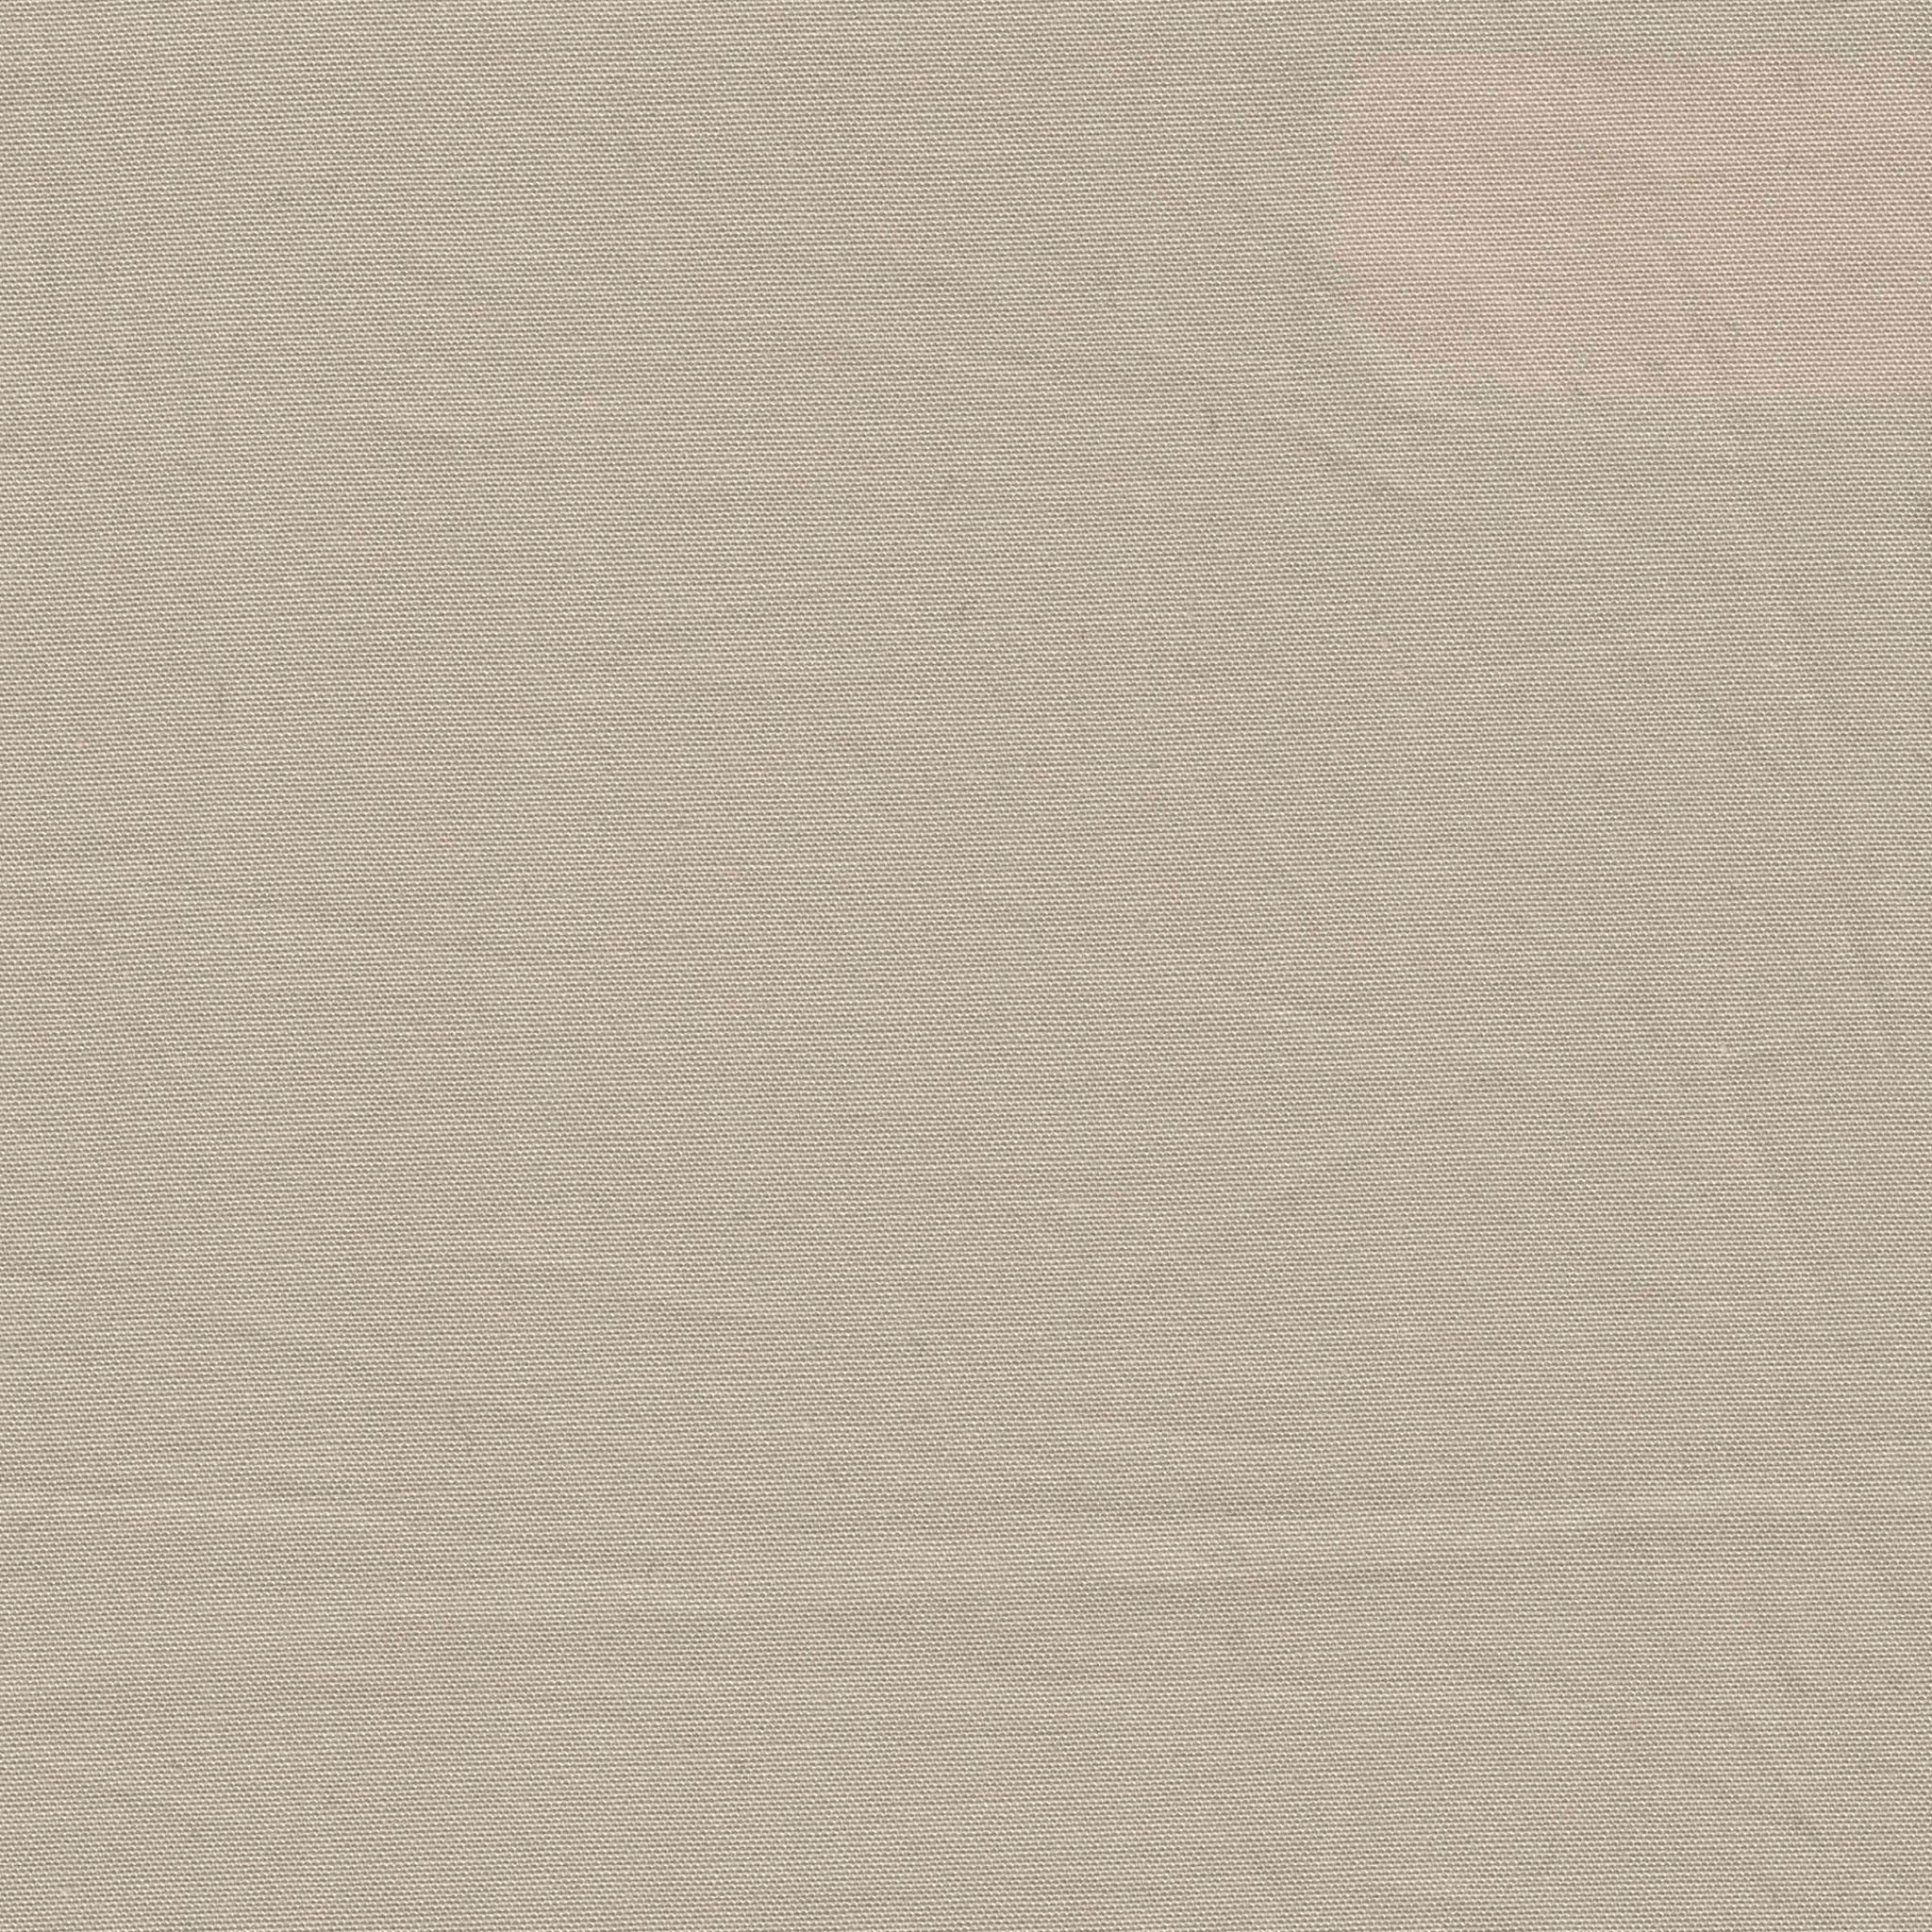 2029 Beige Cotton  - A